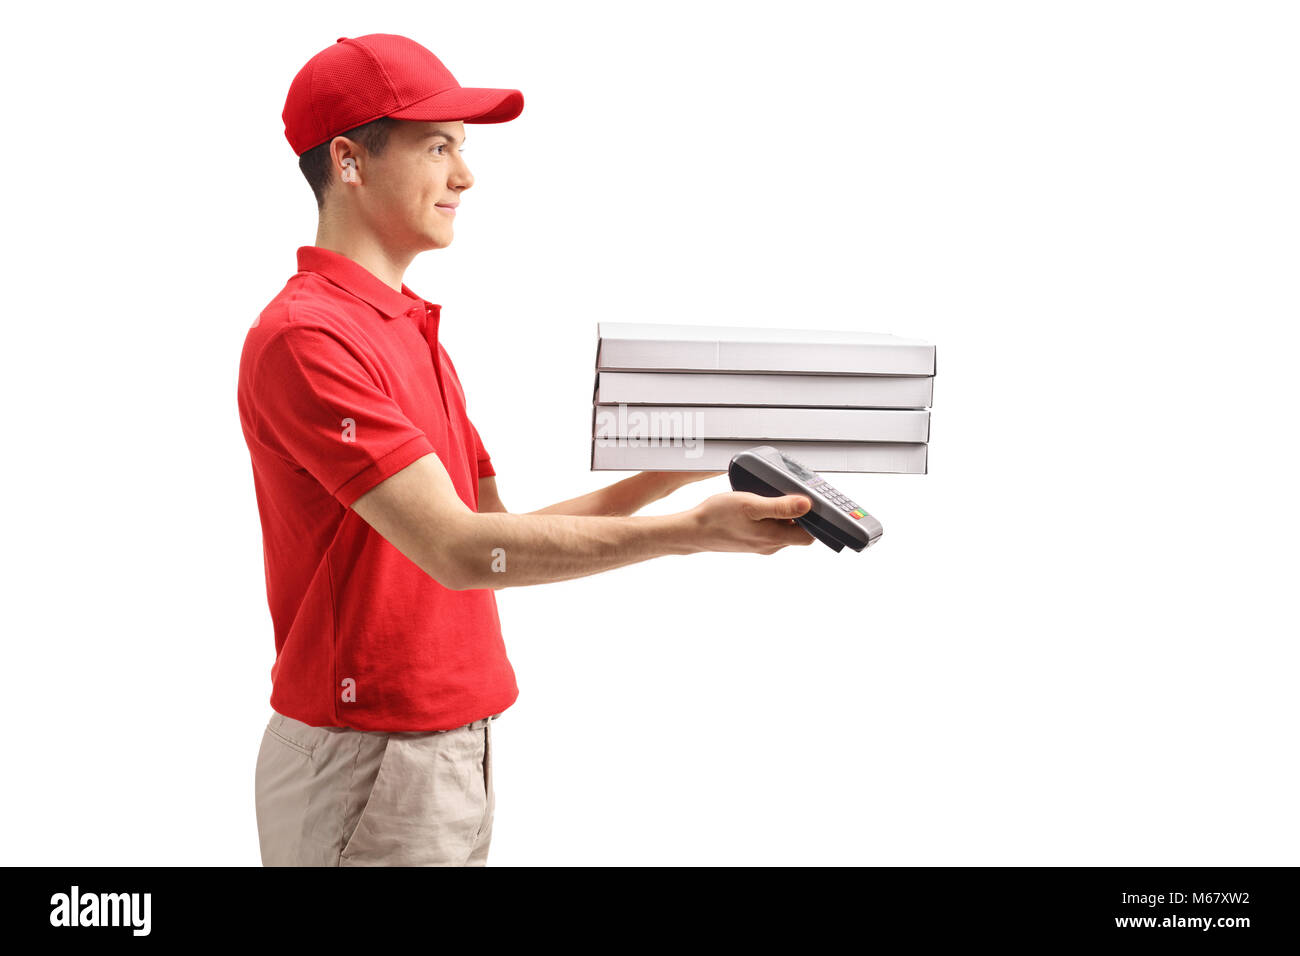 Teenage delivery boy holding pizza boxes and a payment terminal isolated on white background - Stock Image